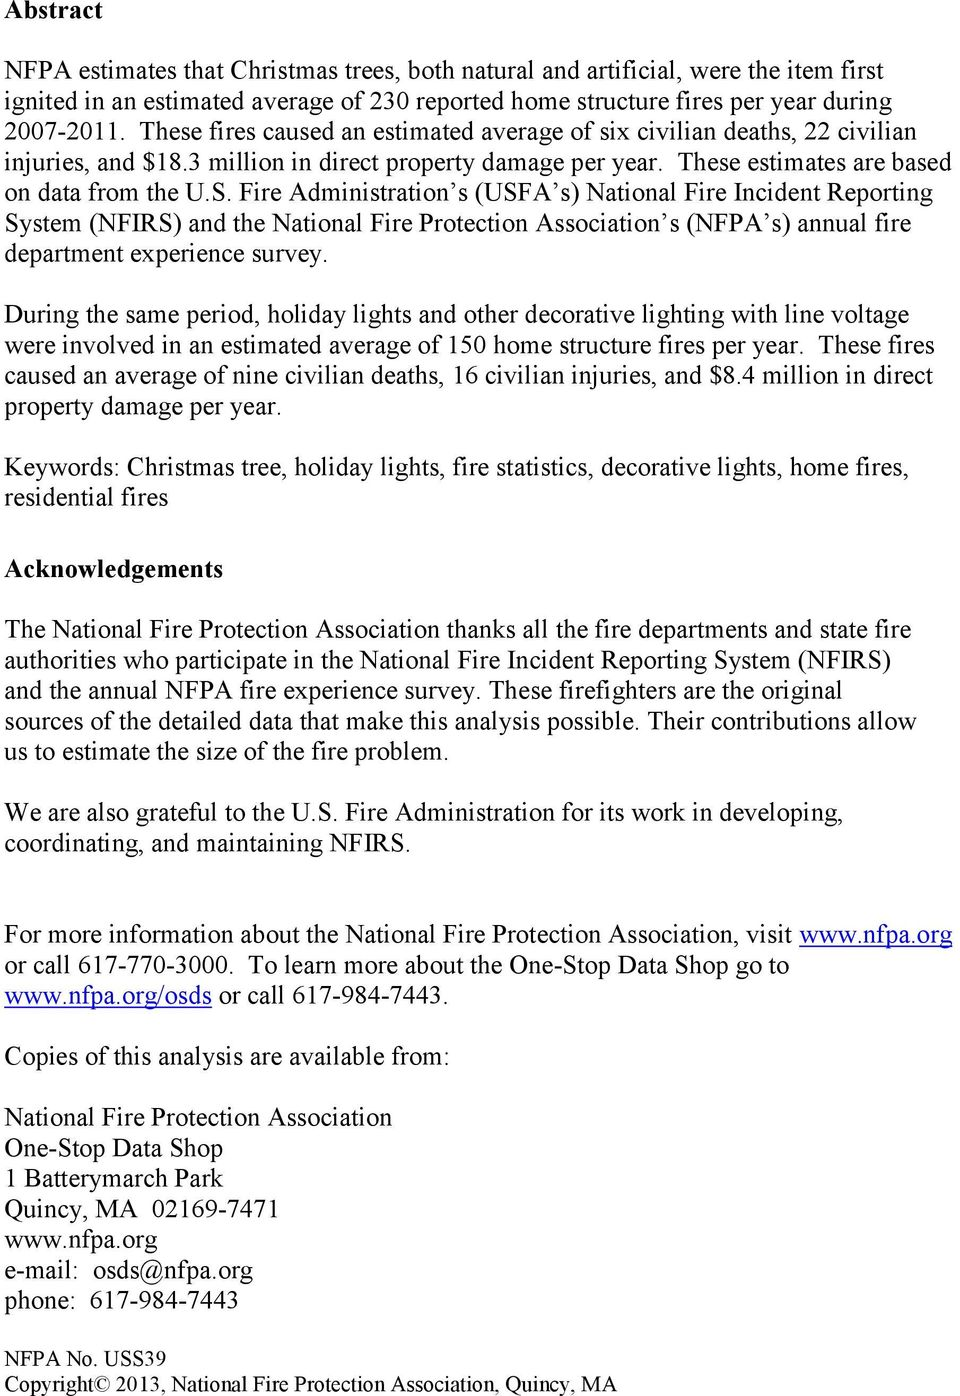 Fire Administration s (USFA s) National Fire Incident Reporting System (NFIRS) and the National Fire Protection Association s (NFPA s) annual fire department experience survey.